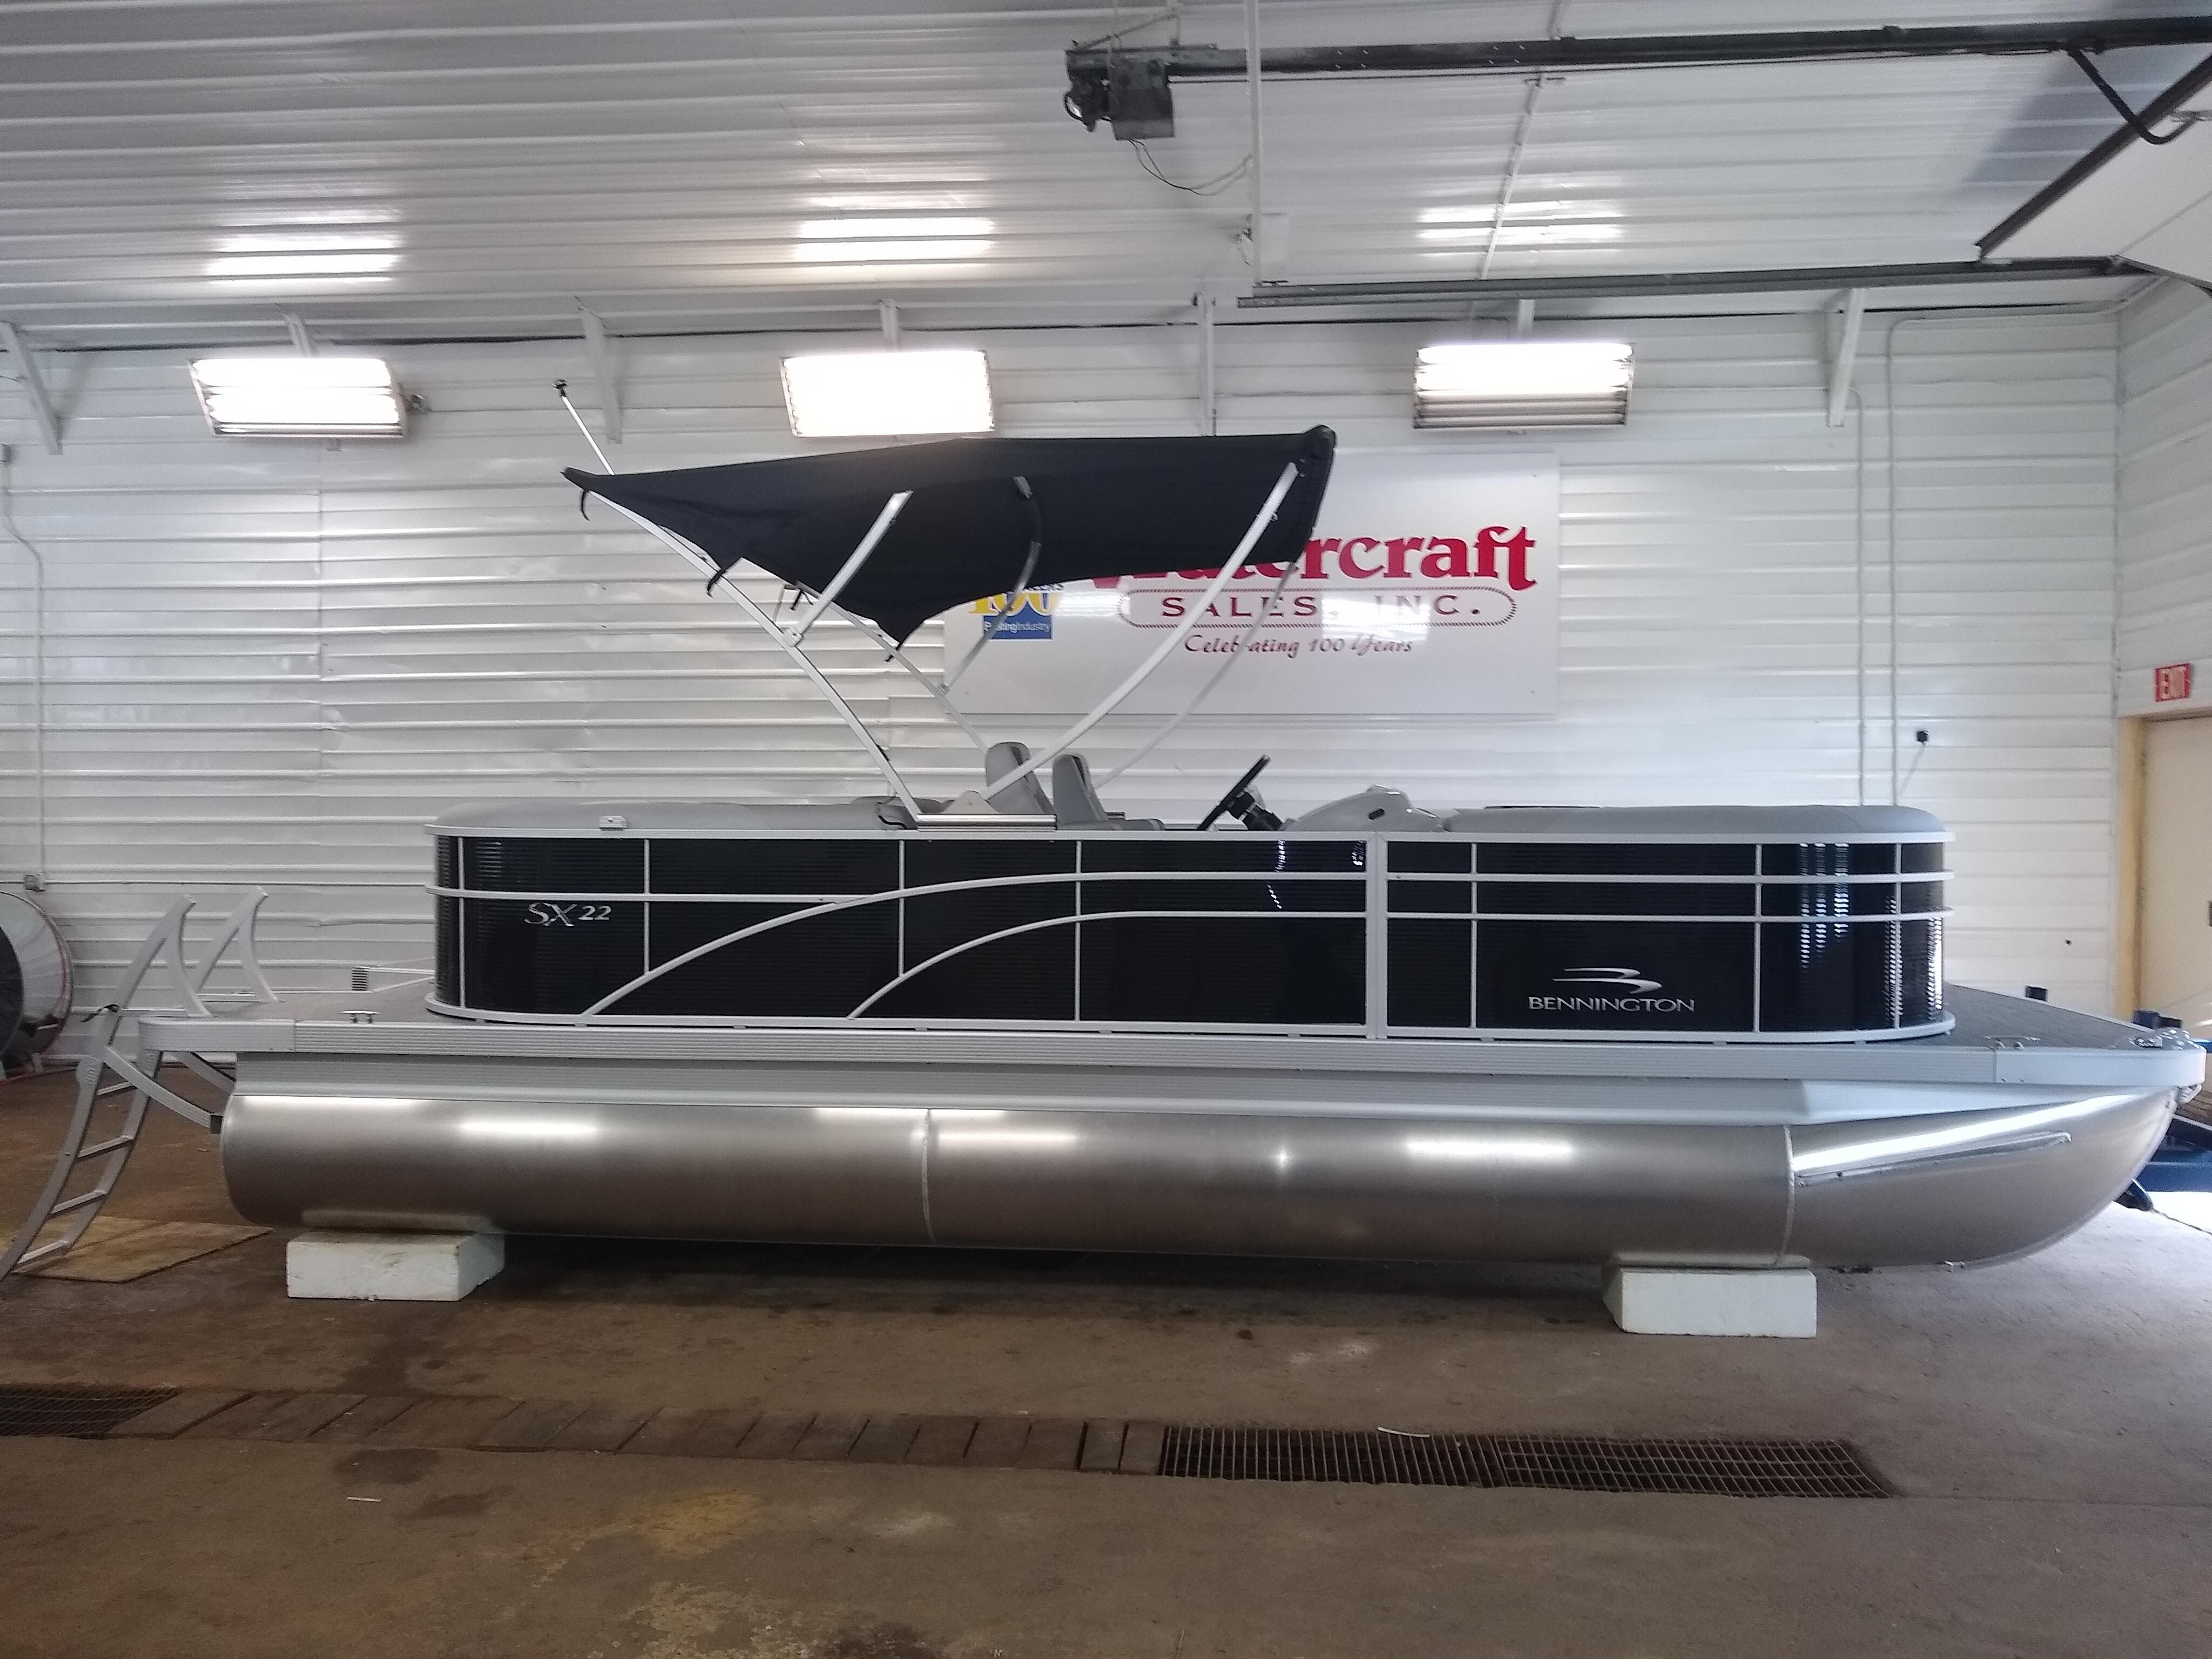 2020 Bennington boat for sale, model of the boat is SX Series 22 & Image # 3 of 14